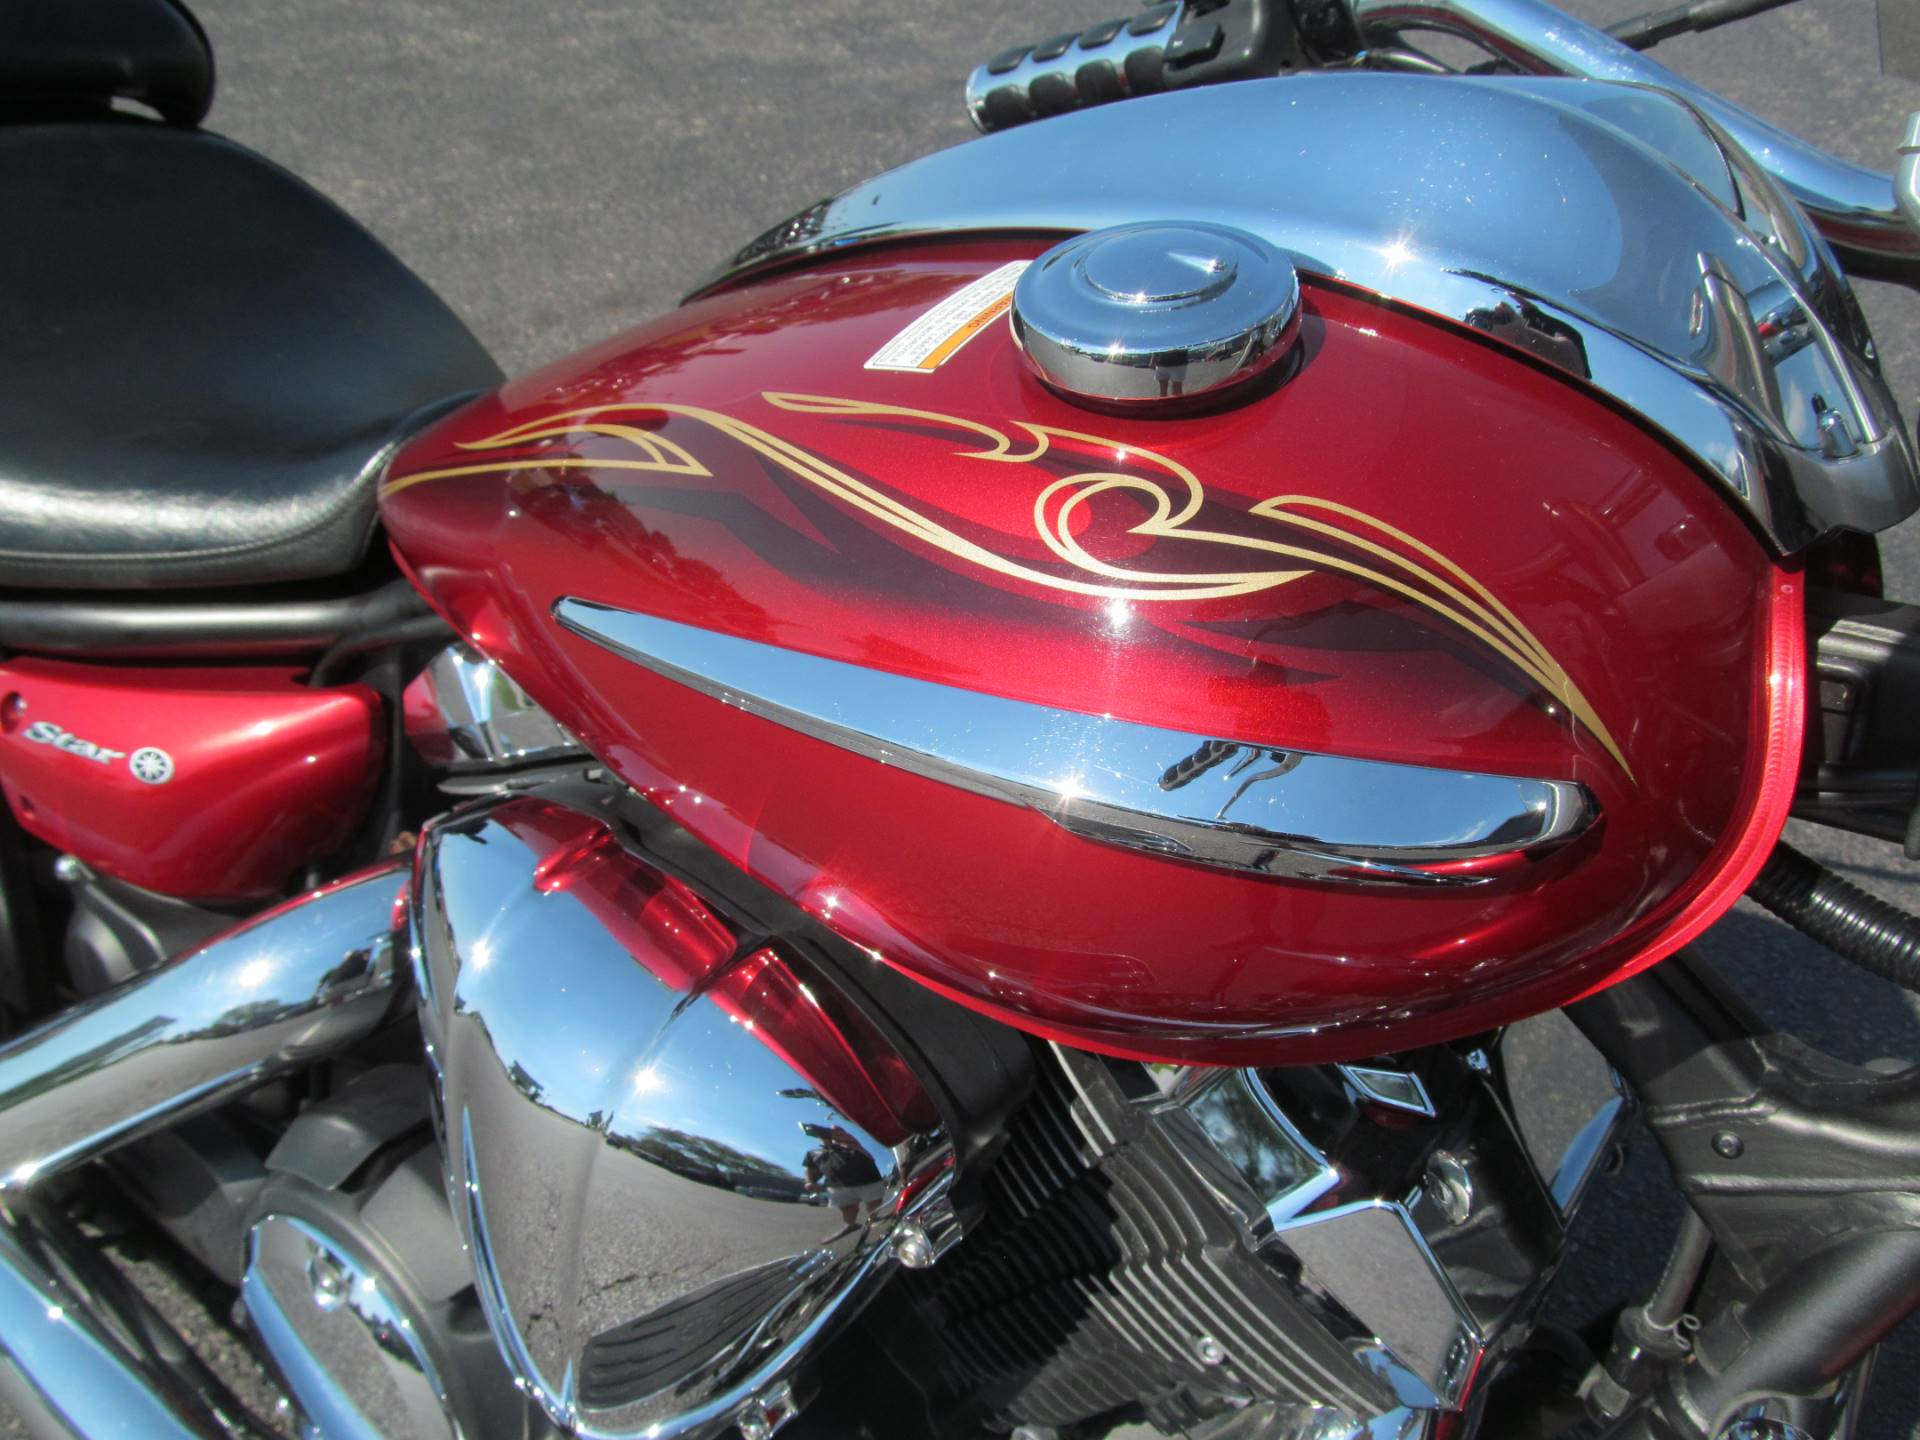 2009 Yamaha V Star 950 in Crystal Lake, Illinois - Photo 8